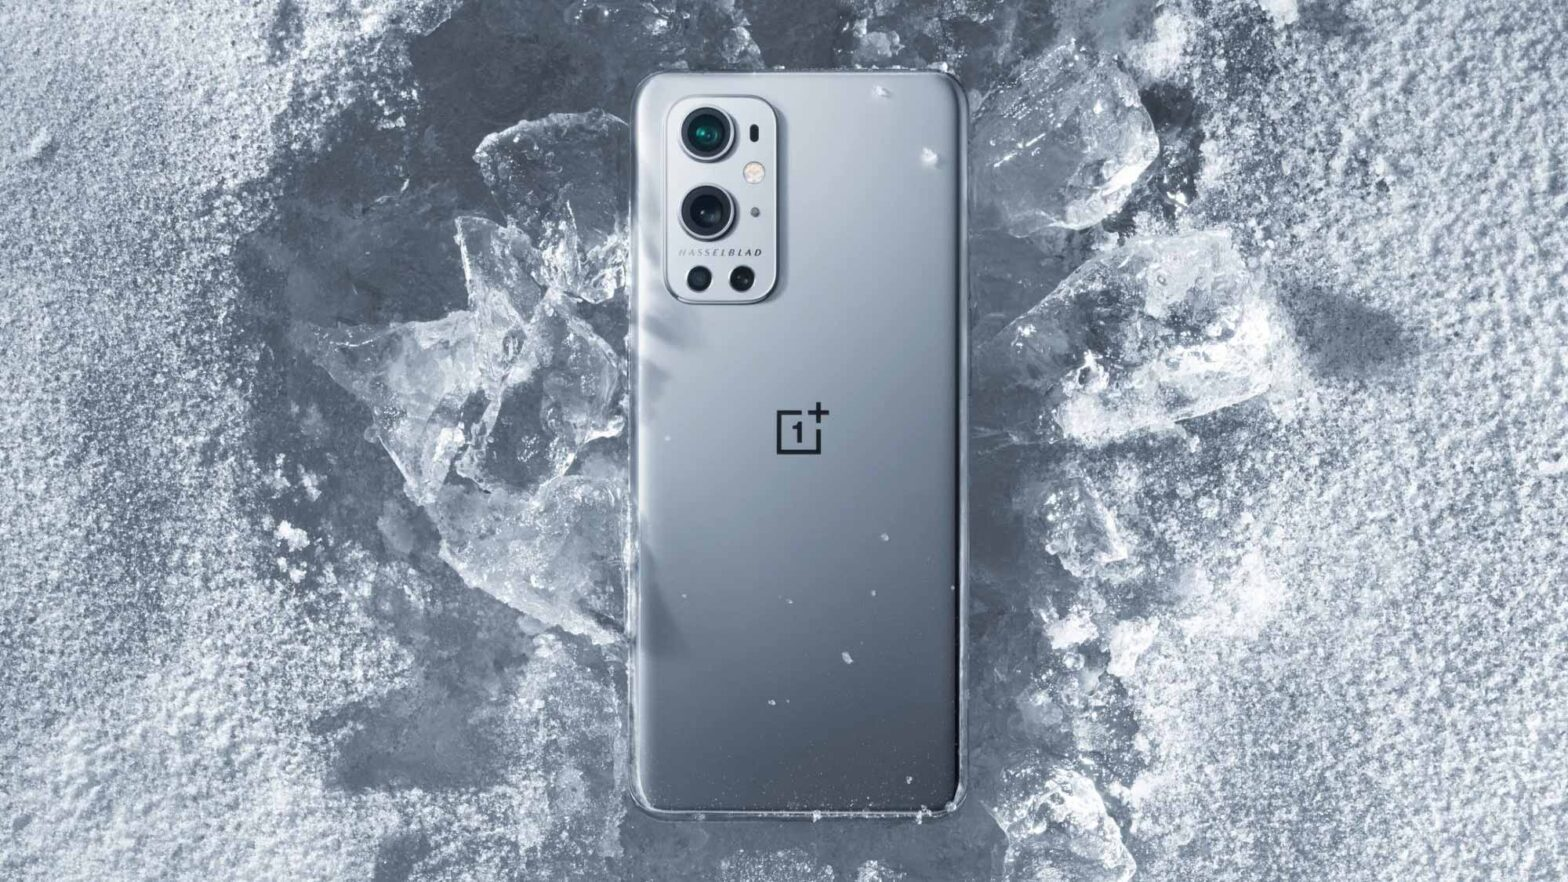 OnePlus 9 Series Smartphones with Hasselblad Camera for Mobile